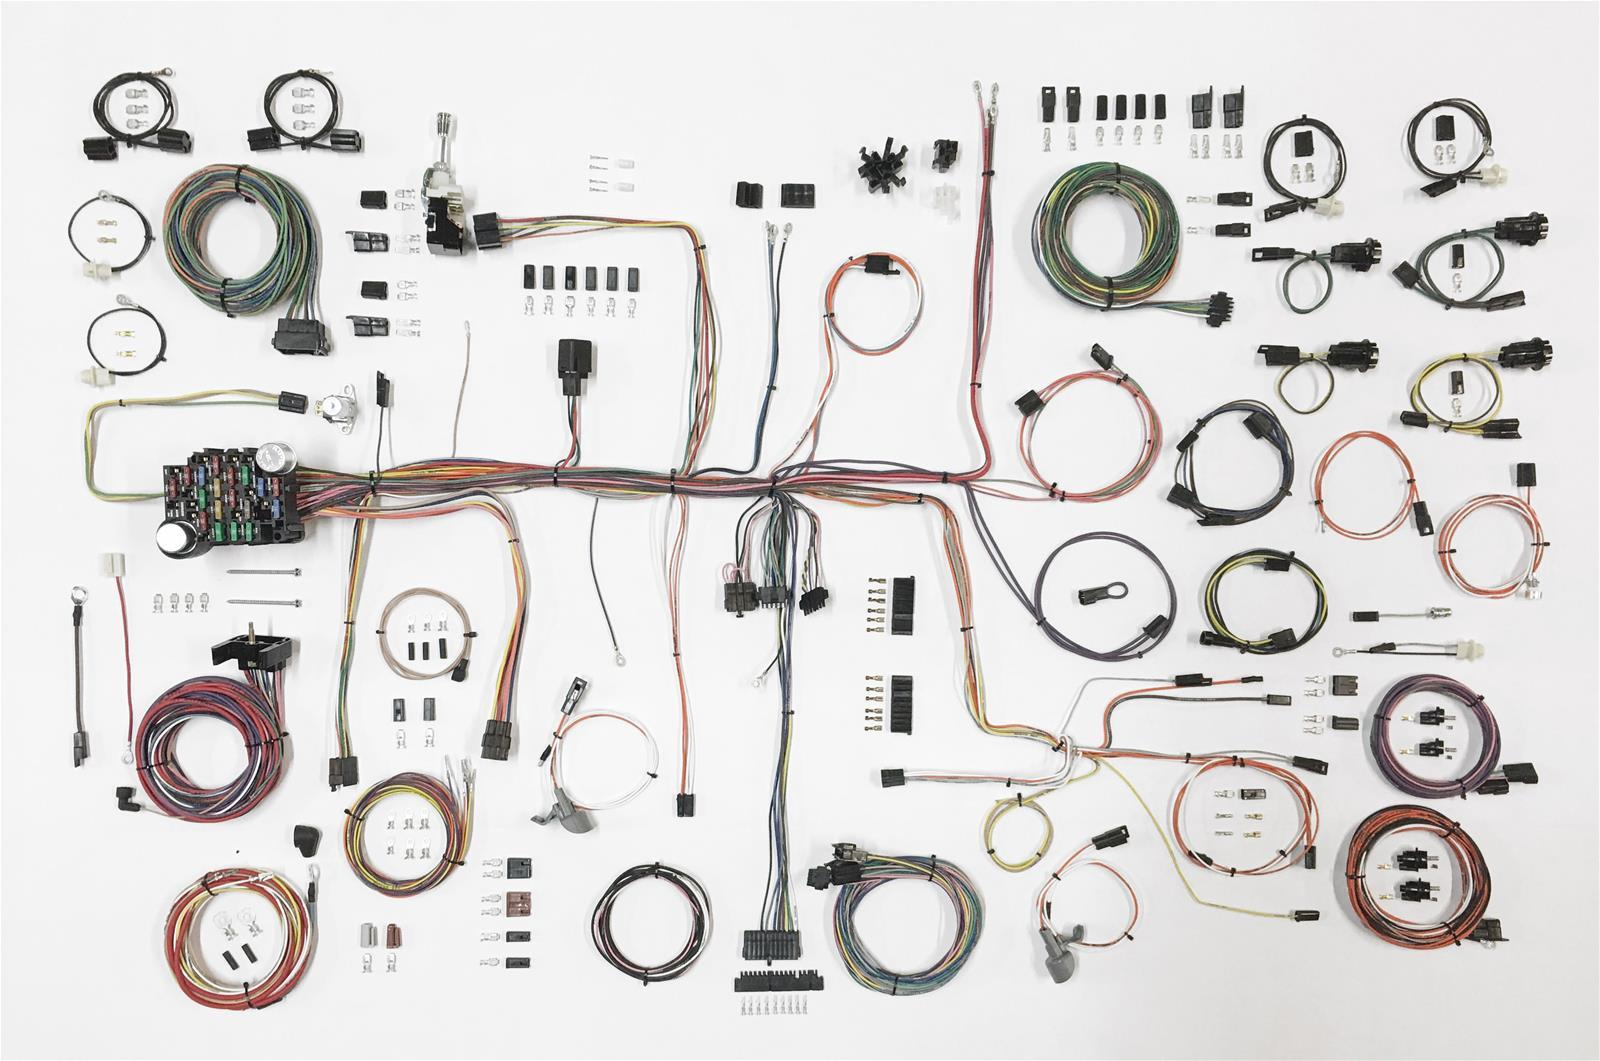 American Autowire 510645 Car Wiring Harness, Classic Update, Complete, Oldsmobile Cutlass 1968-72, Kit